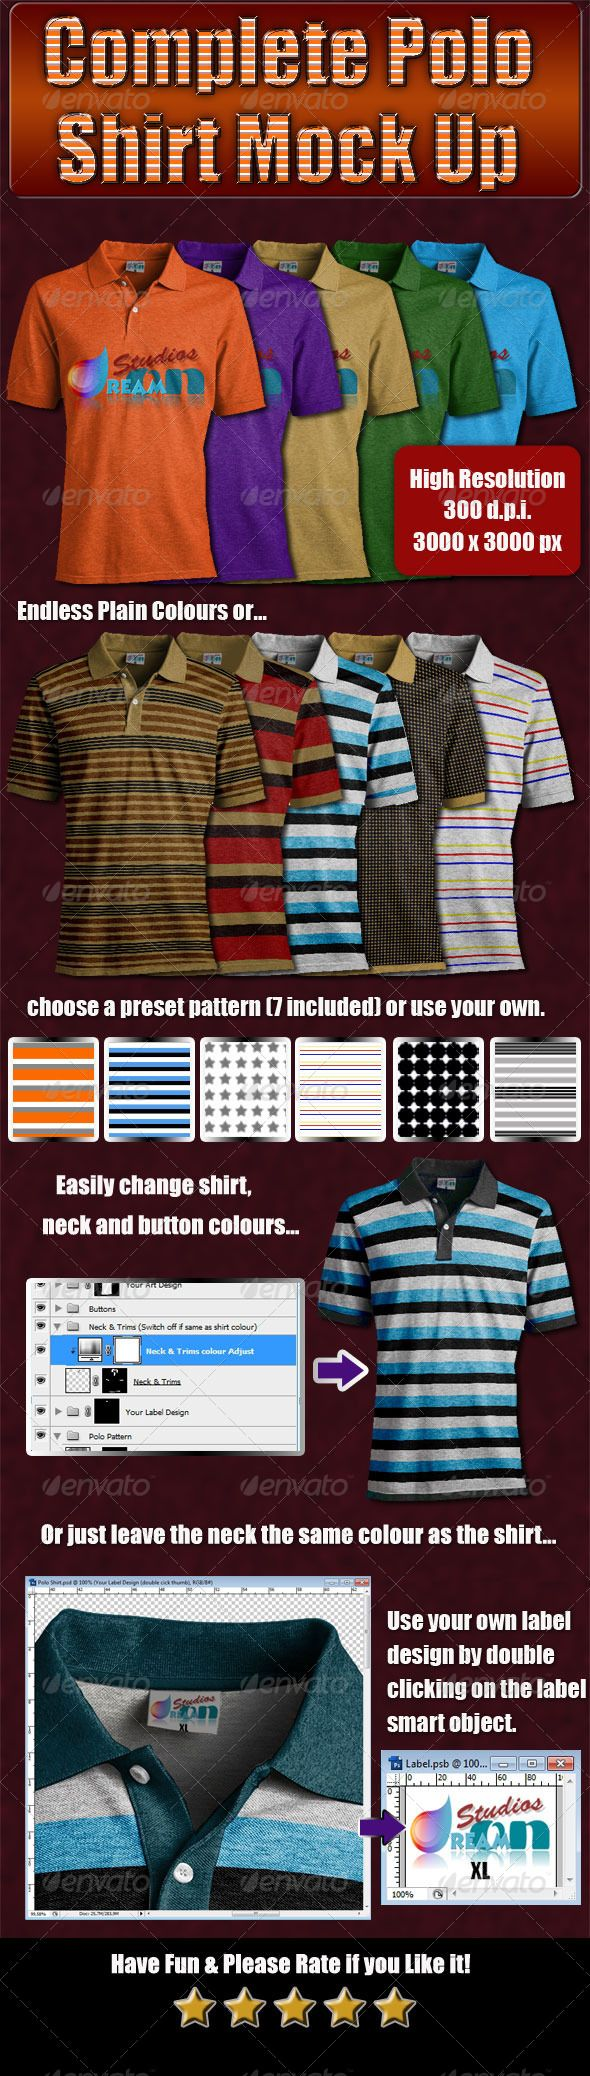 Design your own t-shirt label - Complete Polo Shirt Mock Up